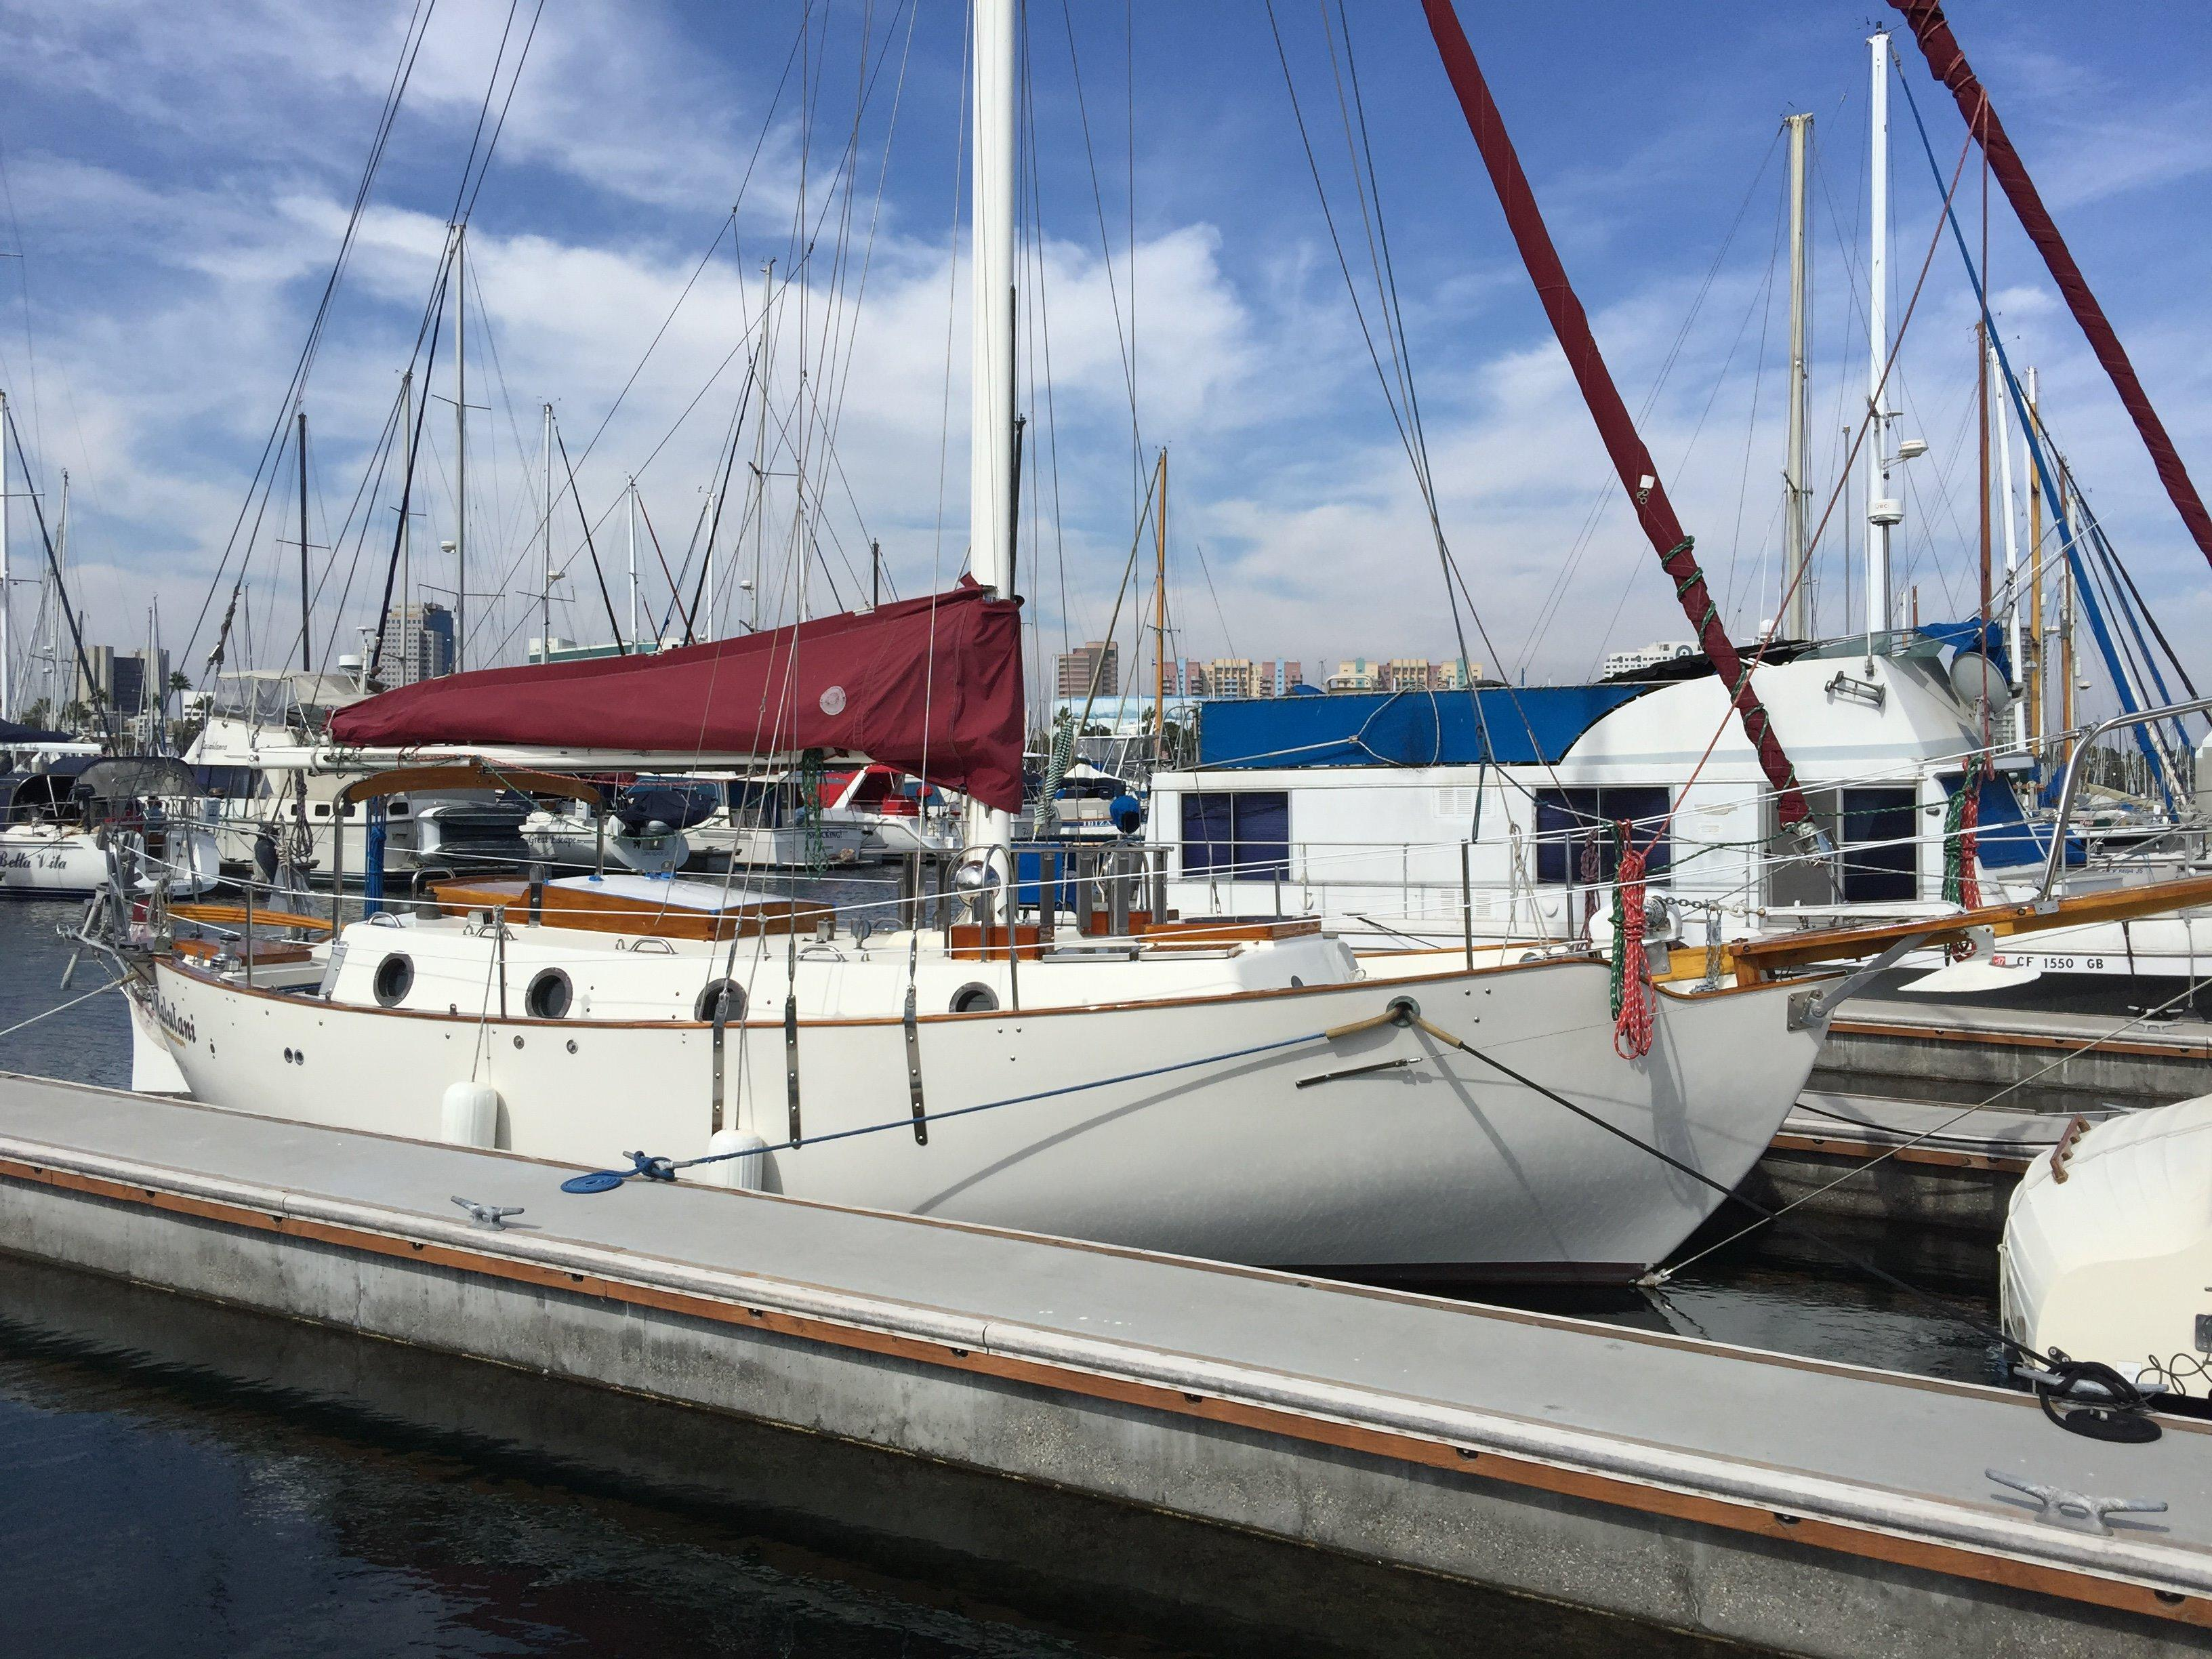 5970808_20161013162129409_1_XLARGE&w=3264&h=2448&t=1476404490000 1975 westsail 32 cutter sail boat for sale www yachtworld com Simple Boat Wiring Diagram at edmiracle.co